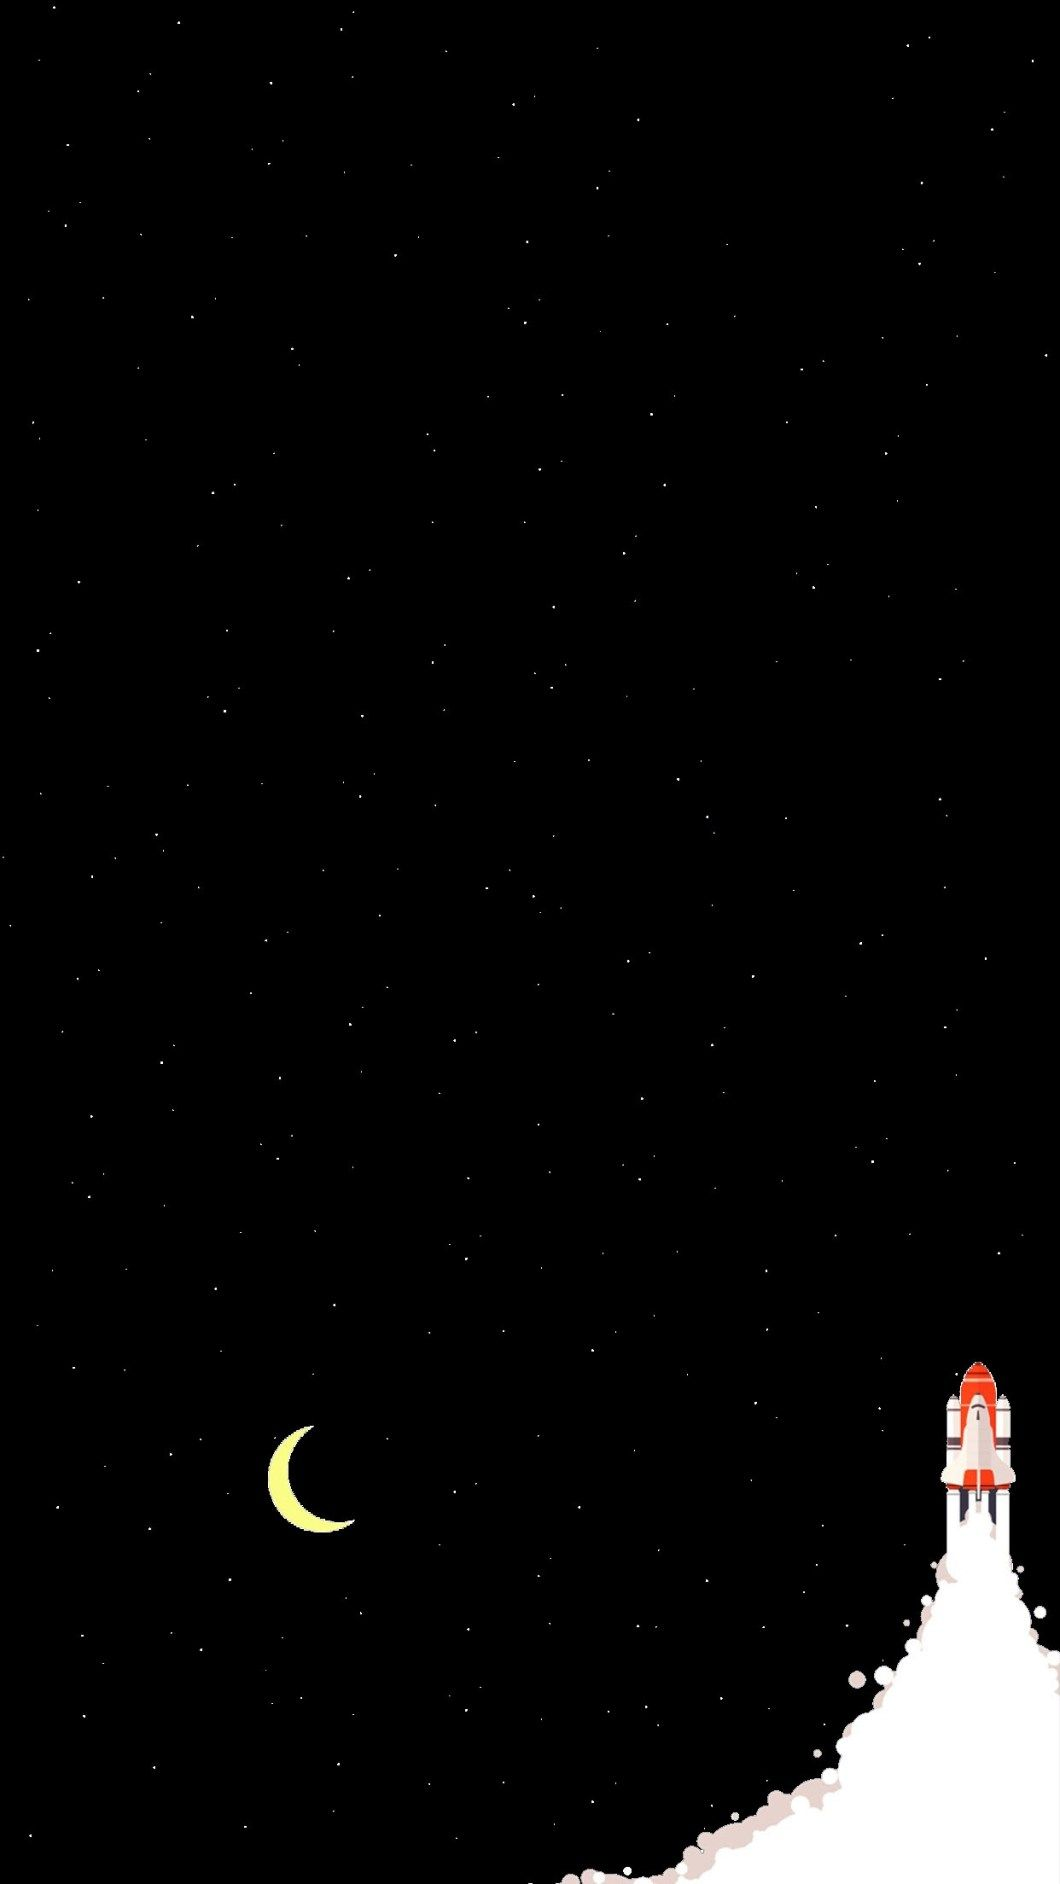 Cool Starry Night Space Rocket Iphone 6 Wallpaper Space Iphone